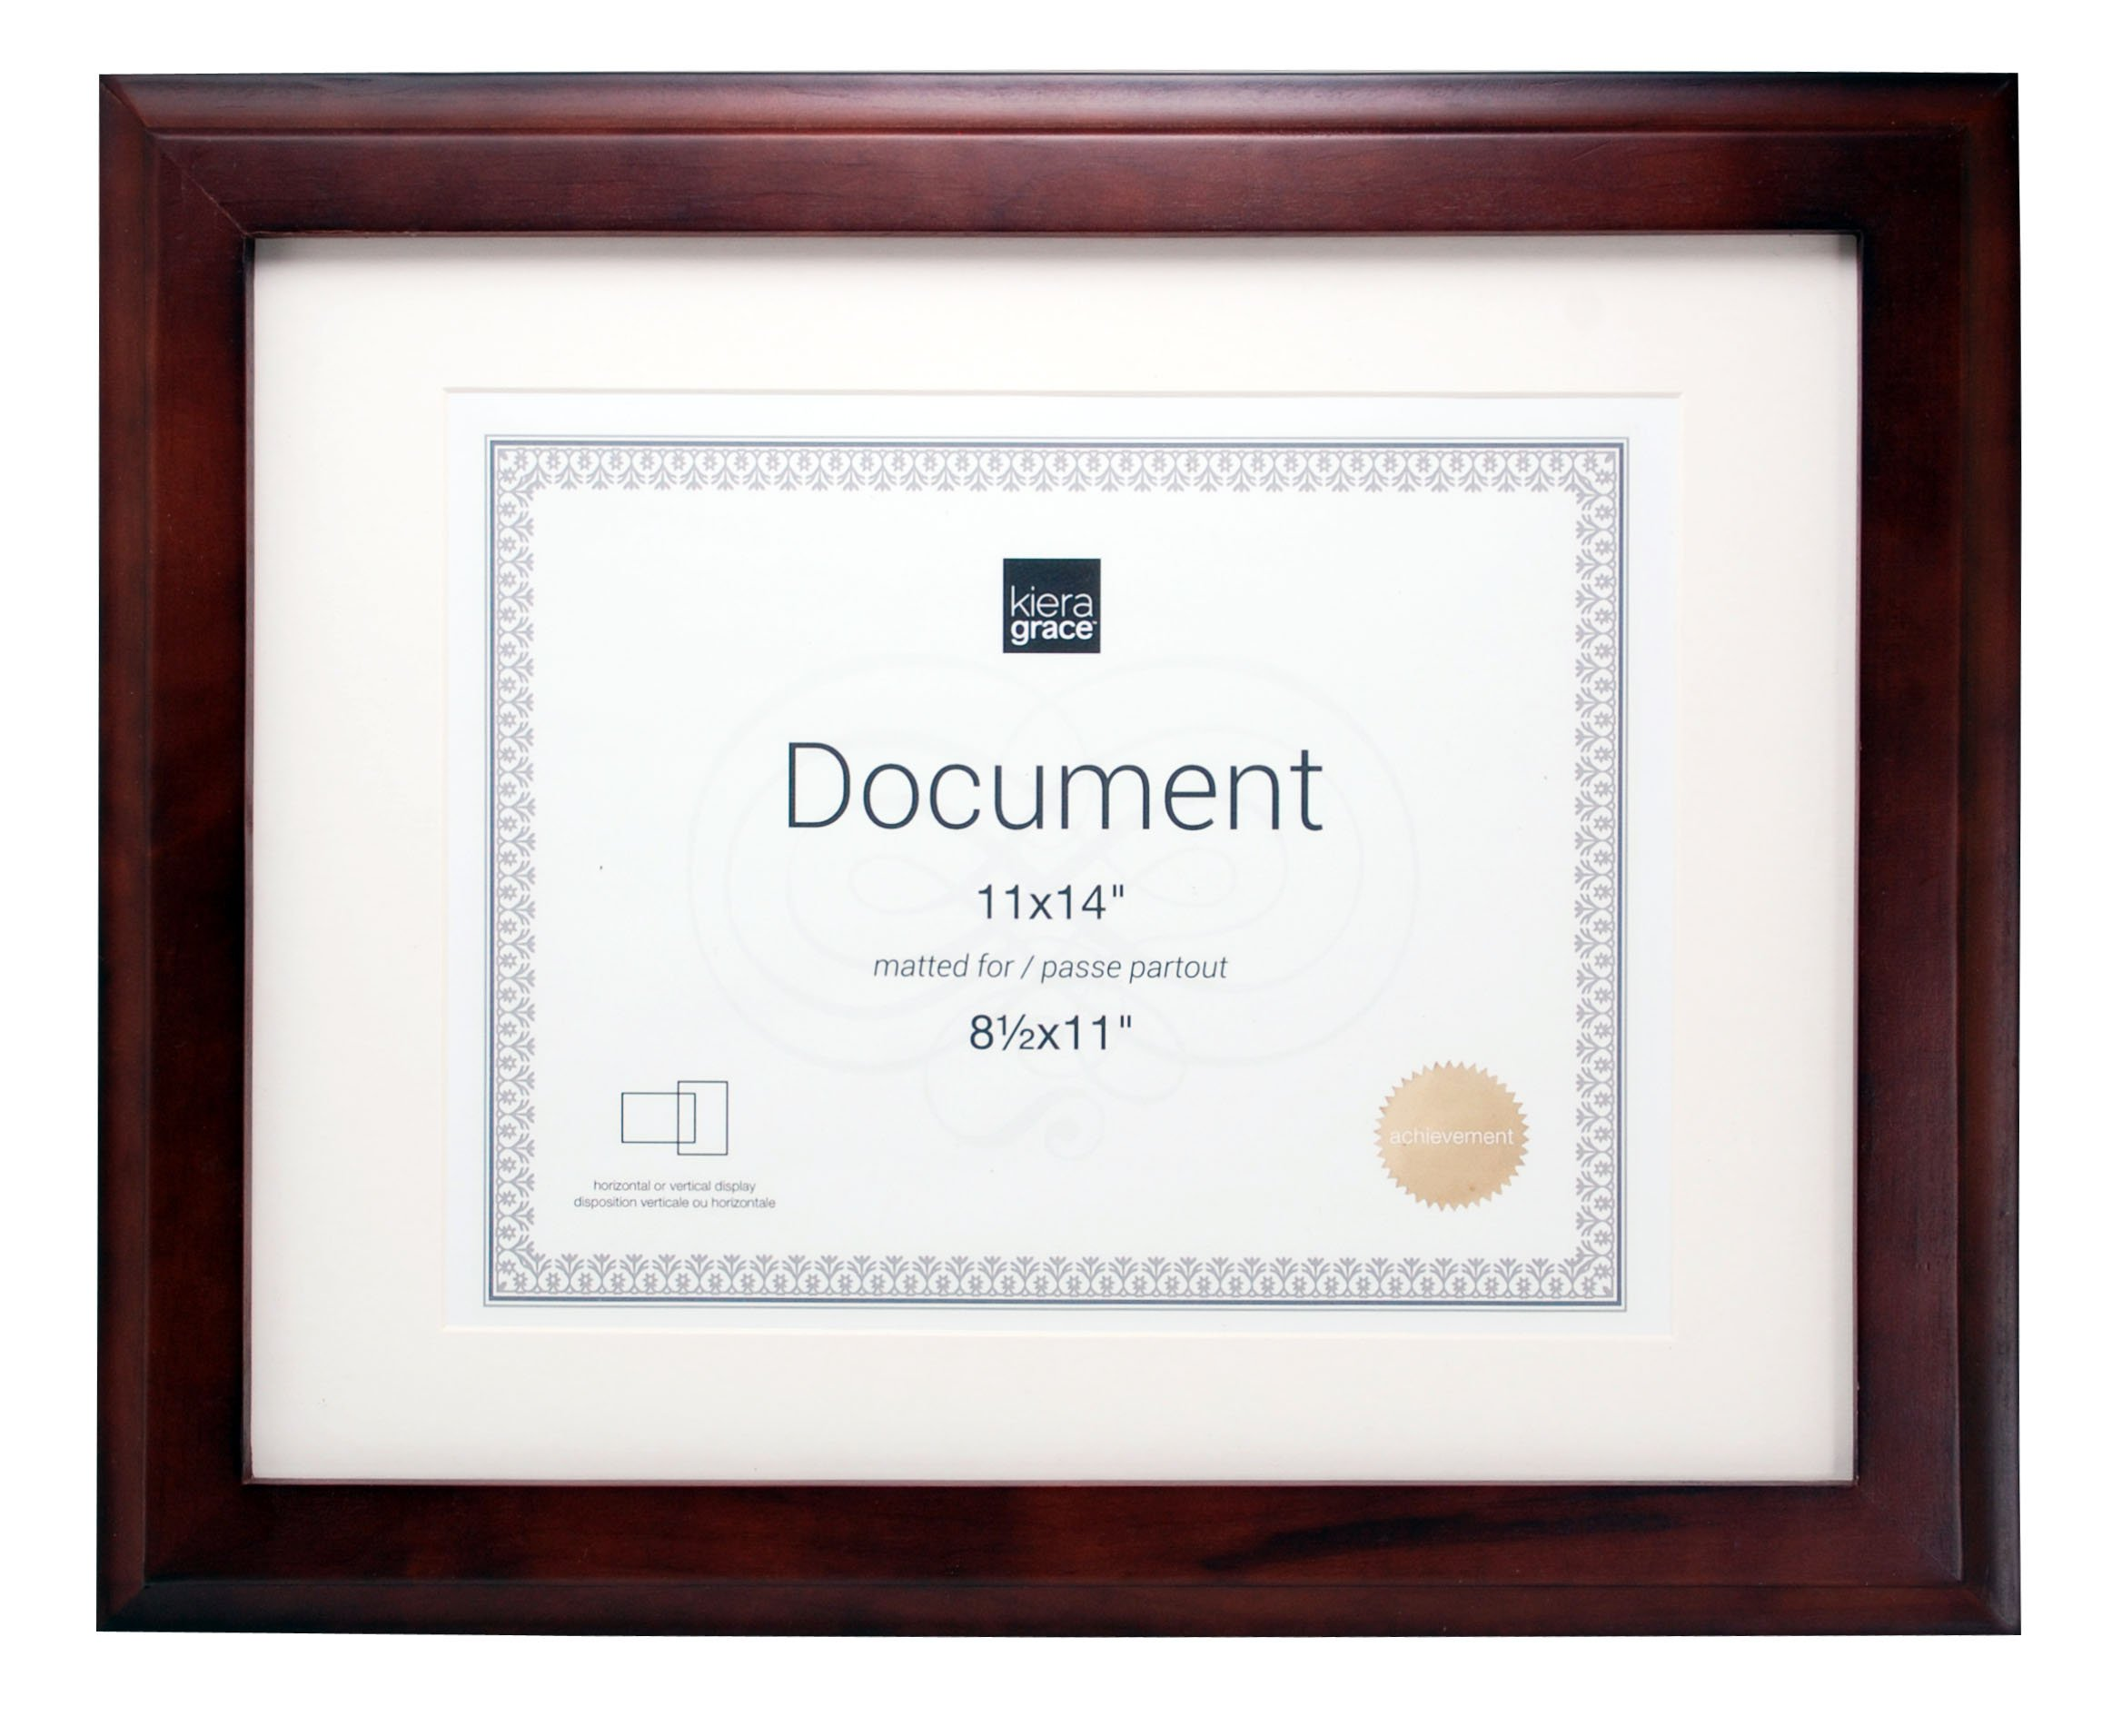 Kieragrace Kiera Grace Oxford Document Frame, 14 Matted for 8.5 by 11-Inch, Pack of 8, Espresso